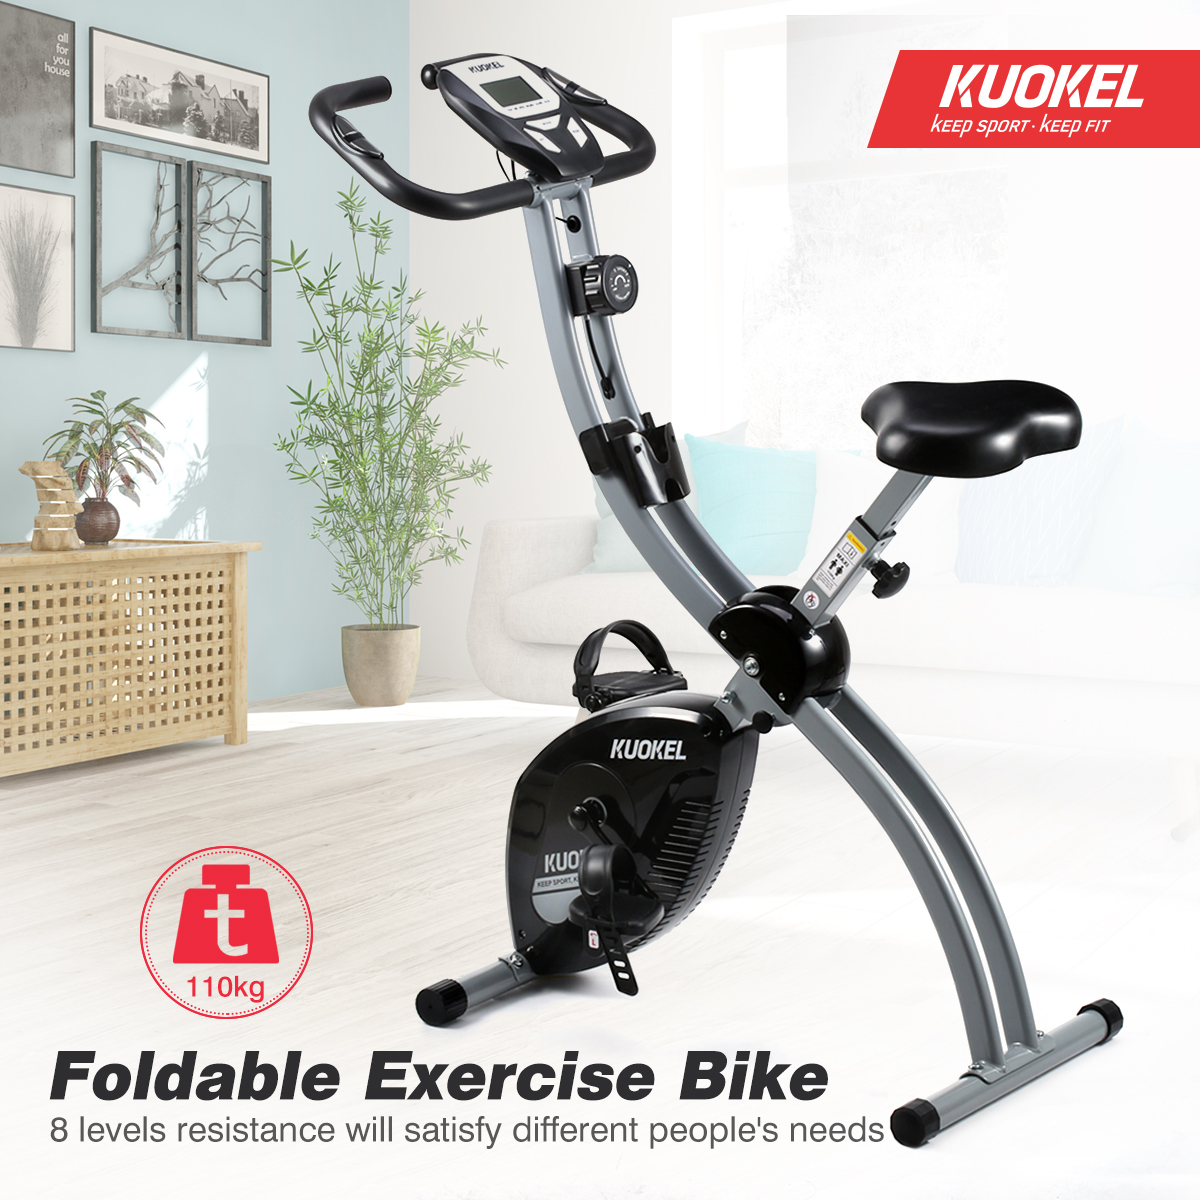 Remarkable Details About Foldable Magnetic Exercise Bike Digital X Bike Home Gym Cardio Fitness Machine A Creativecarmelina Interior Chair Design Creativecarmelinacom